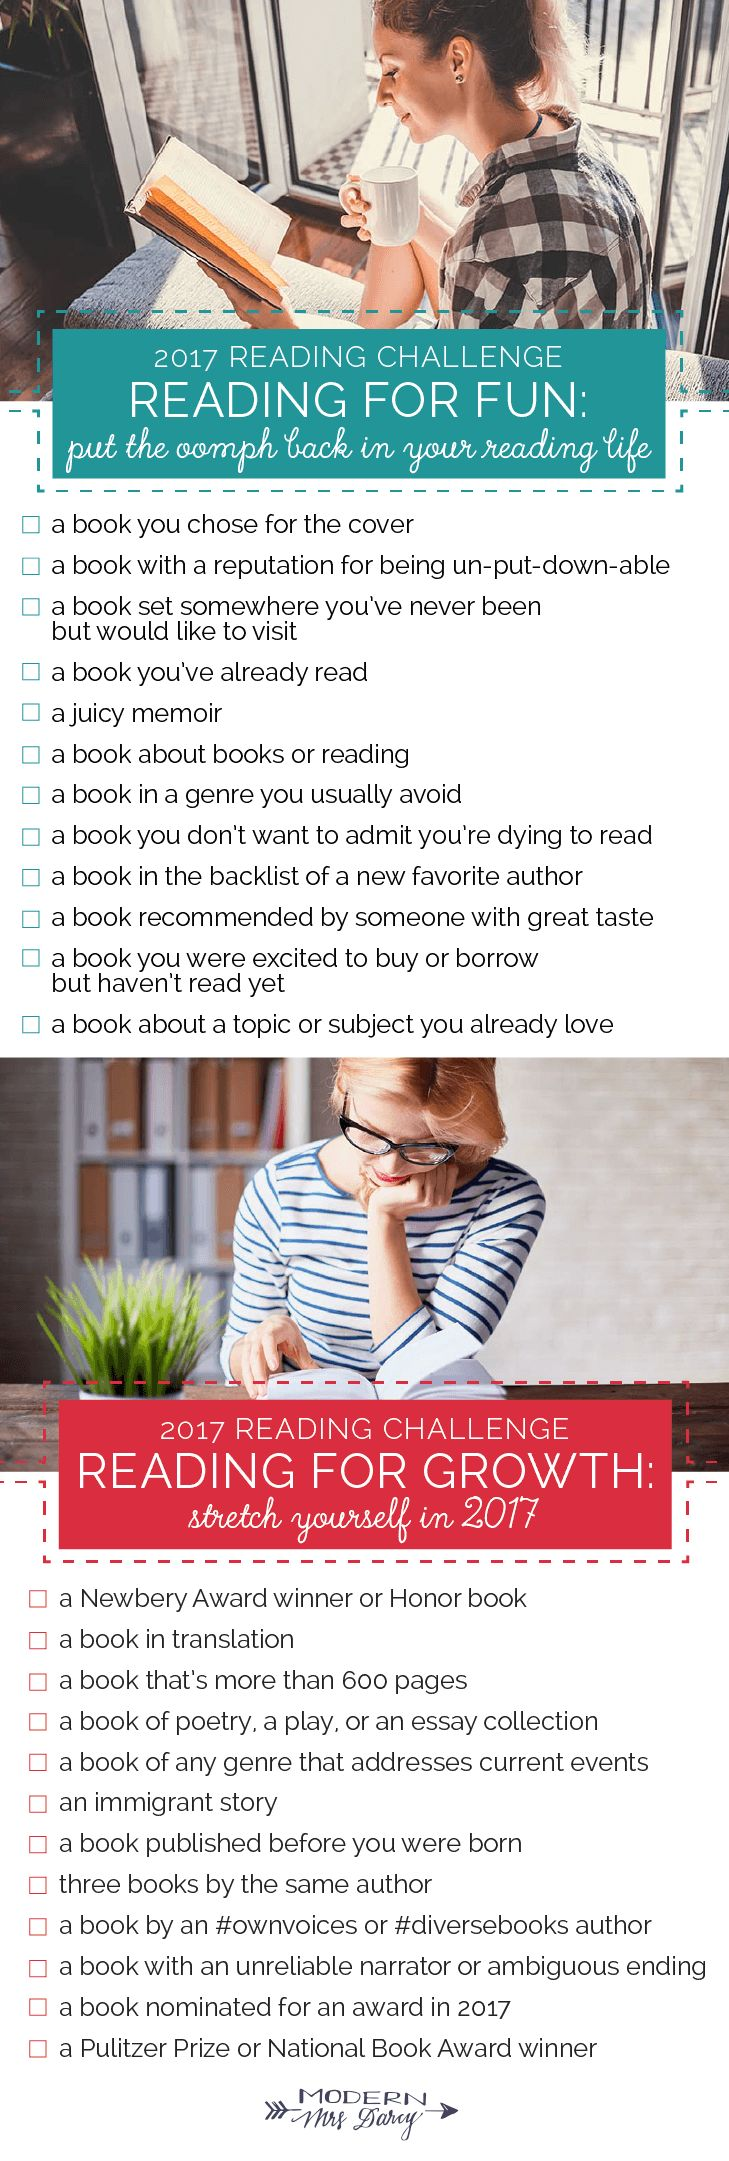 ideas about more reading the great and my guilty pleasure is reading so i try to make sure i get to indulge as much as i can in a busy schedule doing challenges makes things more interesting and